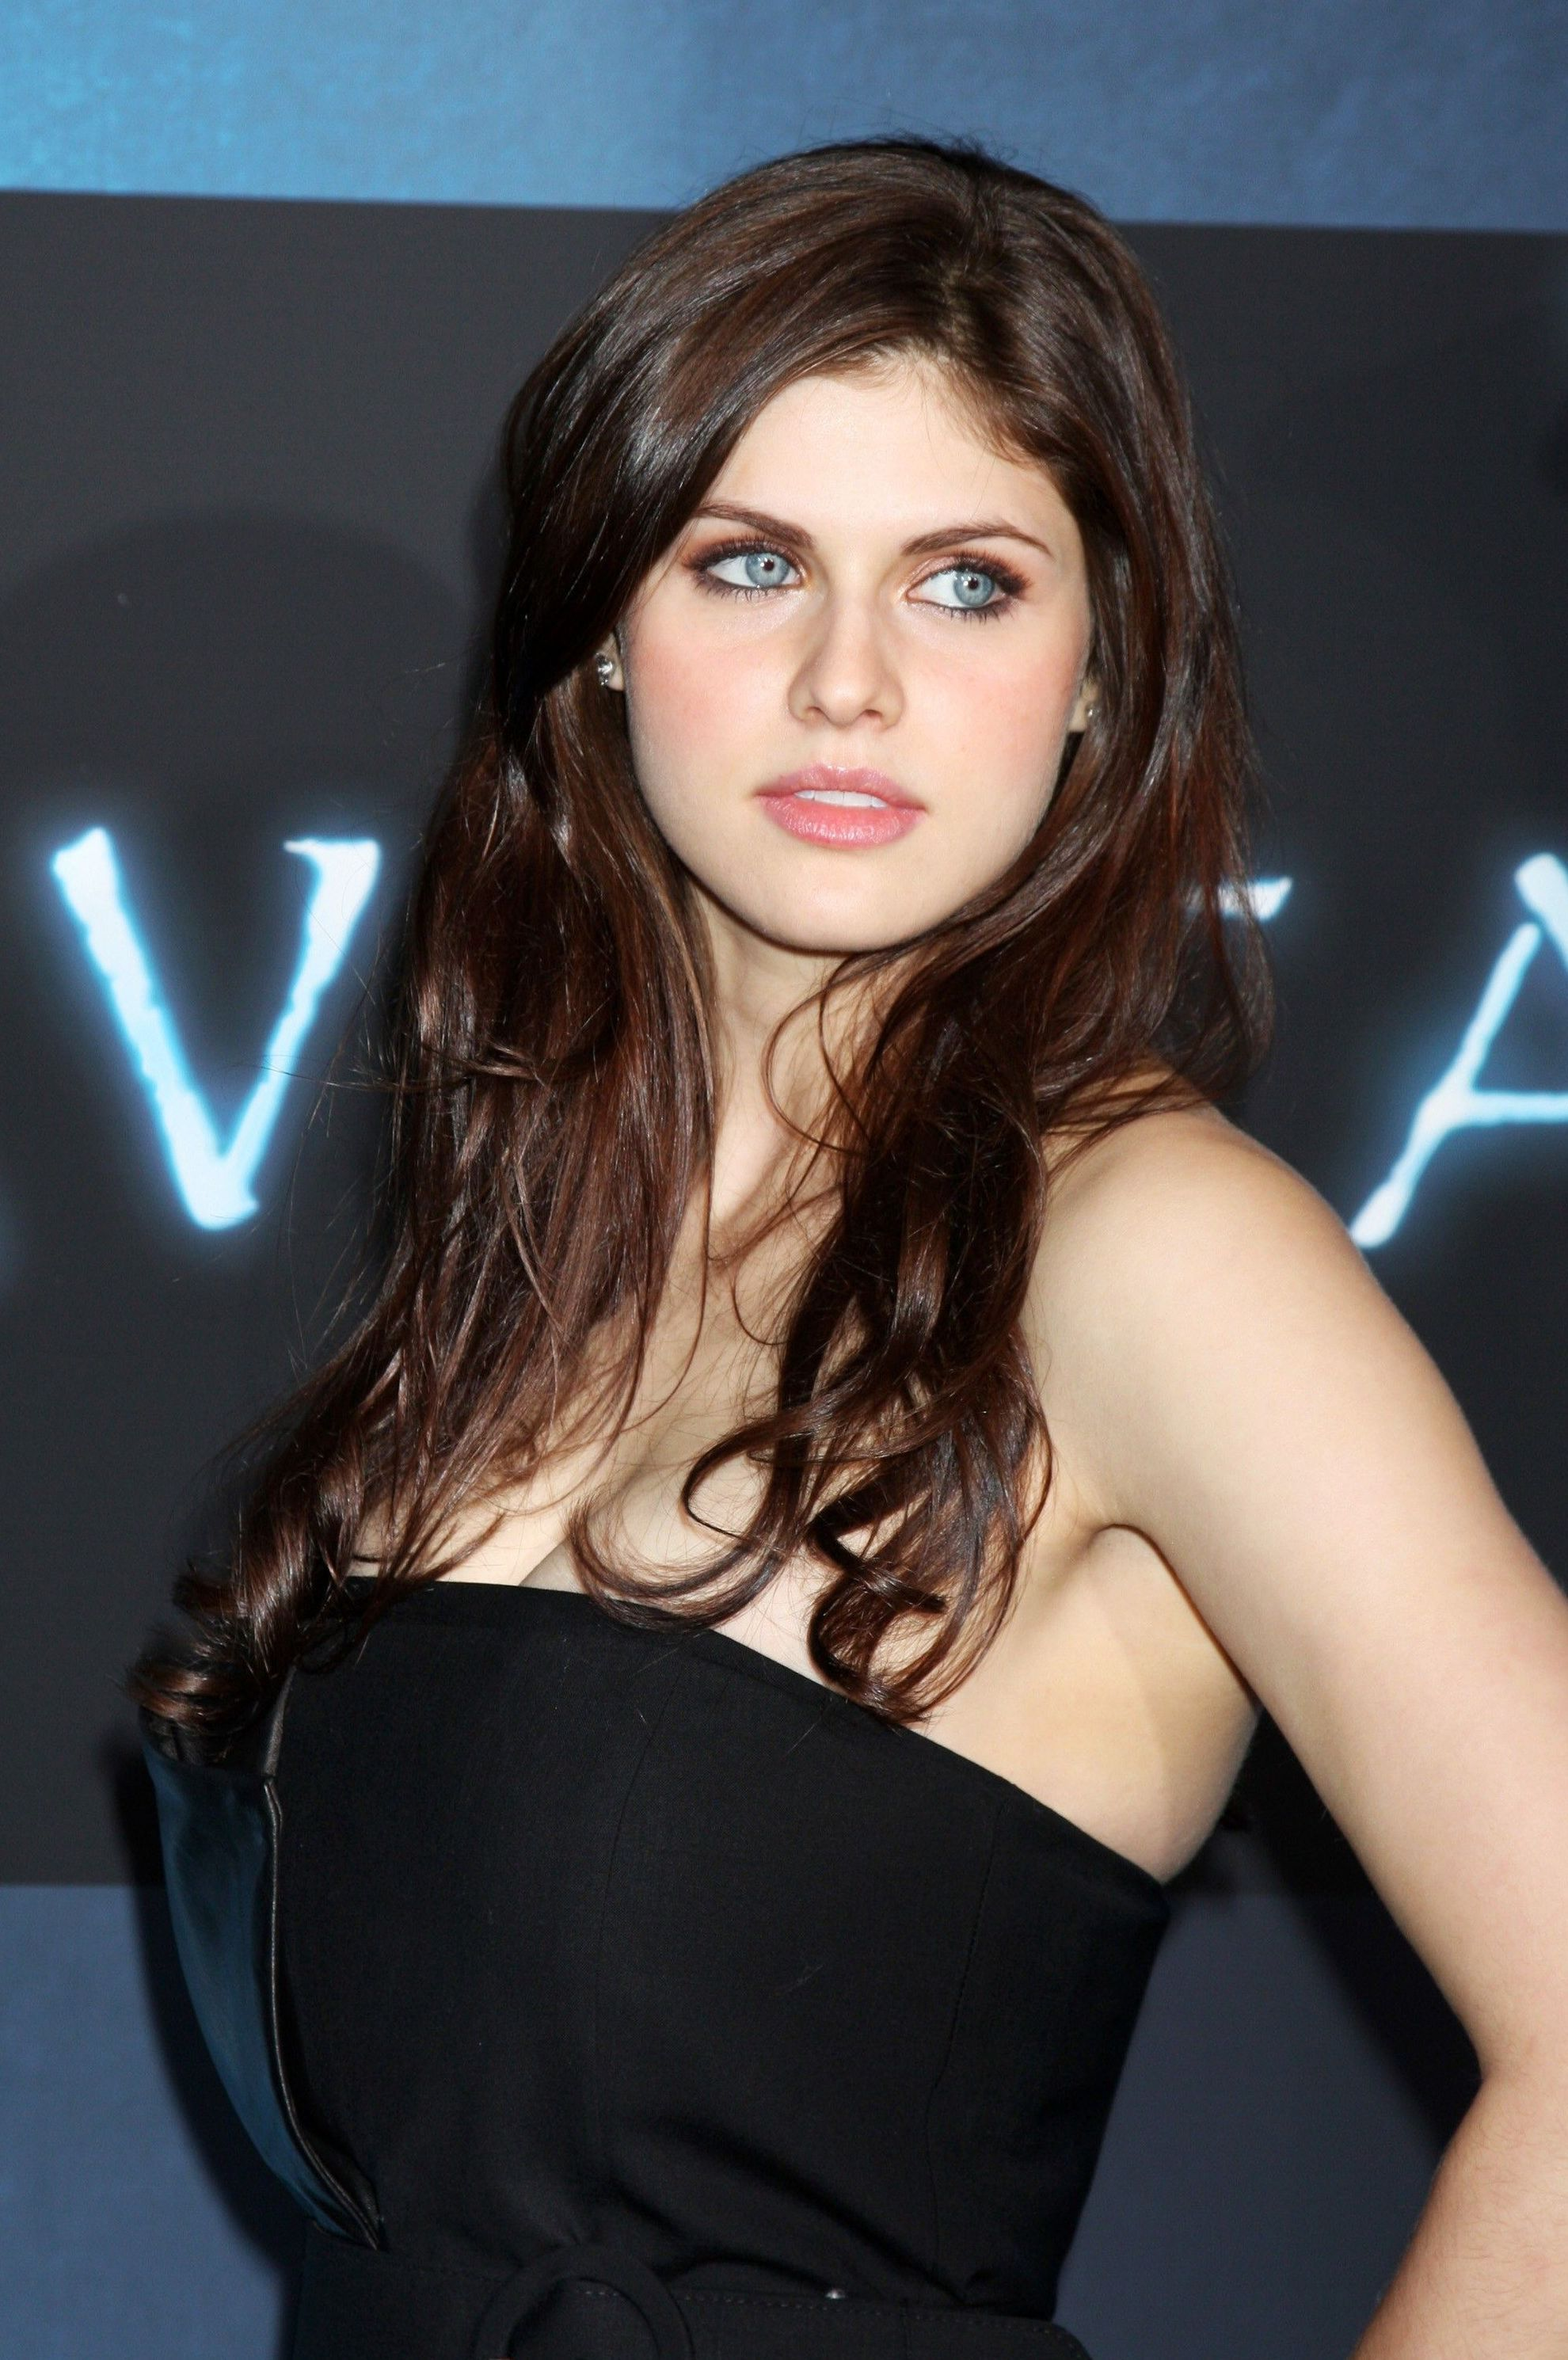 Alexandra Daddario Actress Images Age Wiki Matthew Height Beautiful Female Alexandradaddariosexy Alexandr Alexandra Daddario Alexandra Daddario Images Beauty